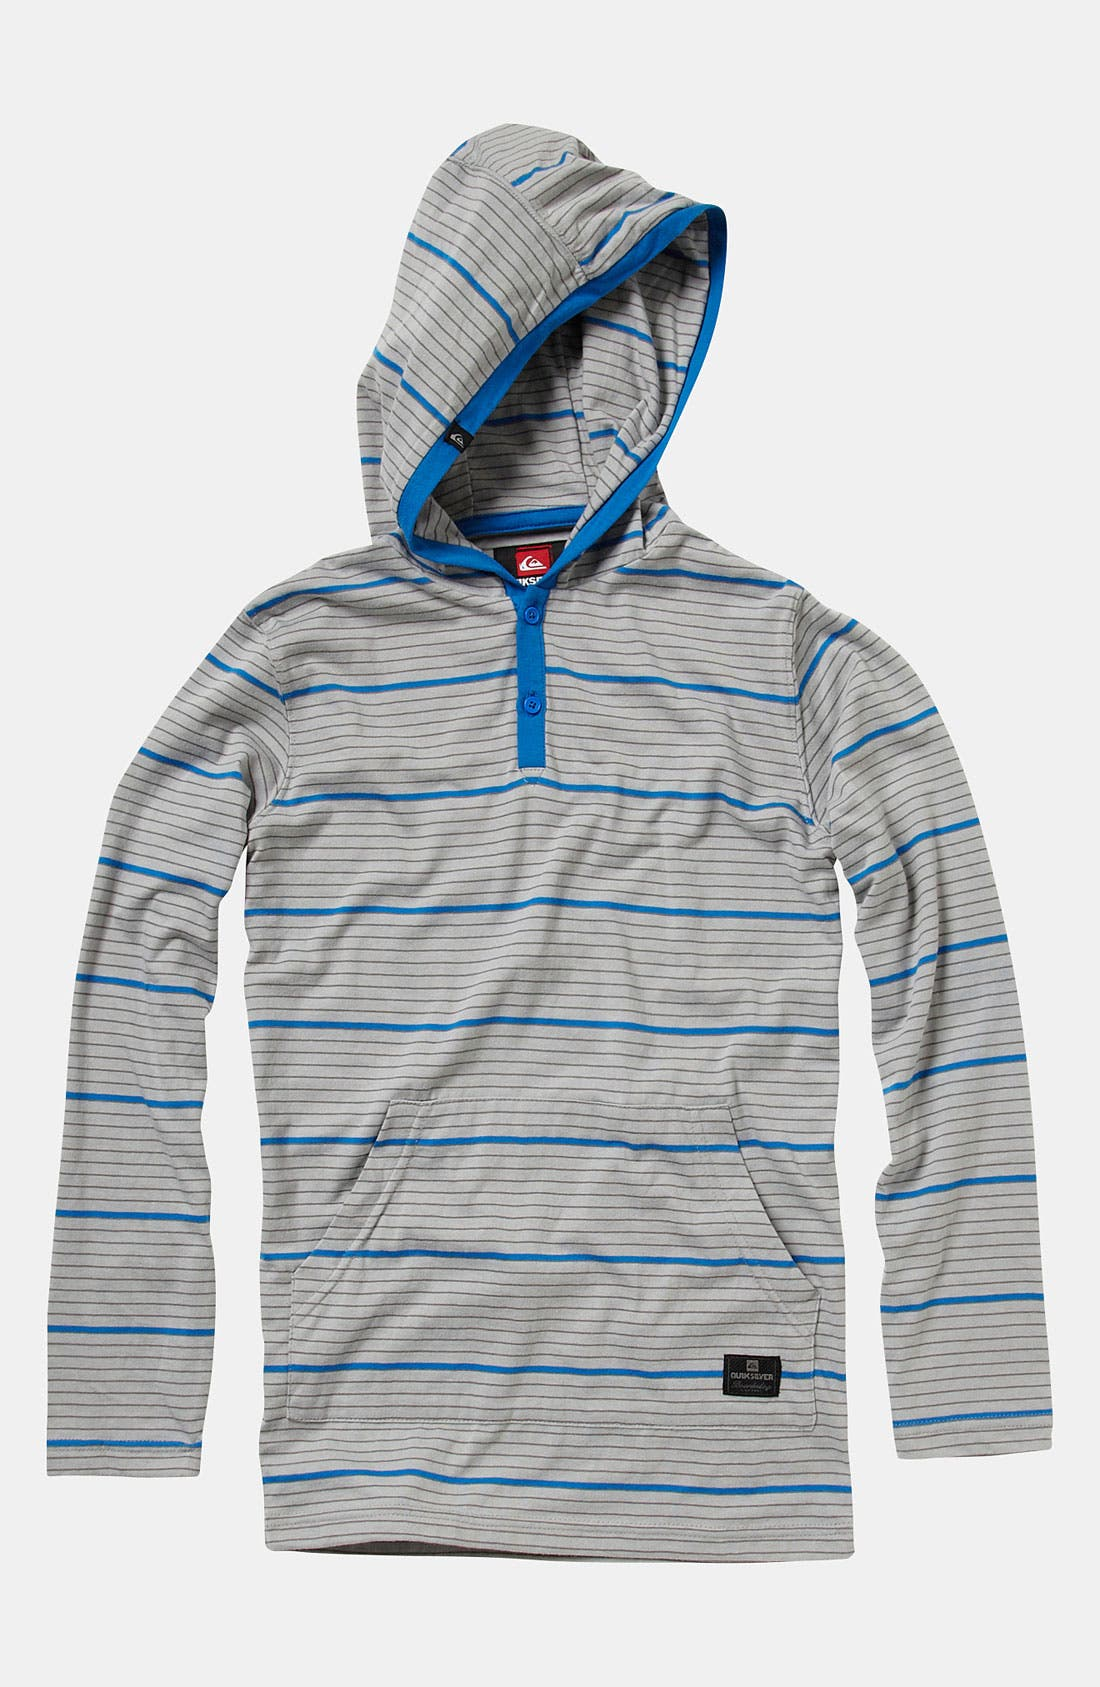 Main Image - Quiksilver 'Hodad Stoke' Knit Hoodie (Toddler)